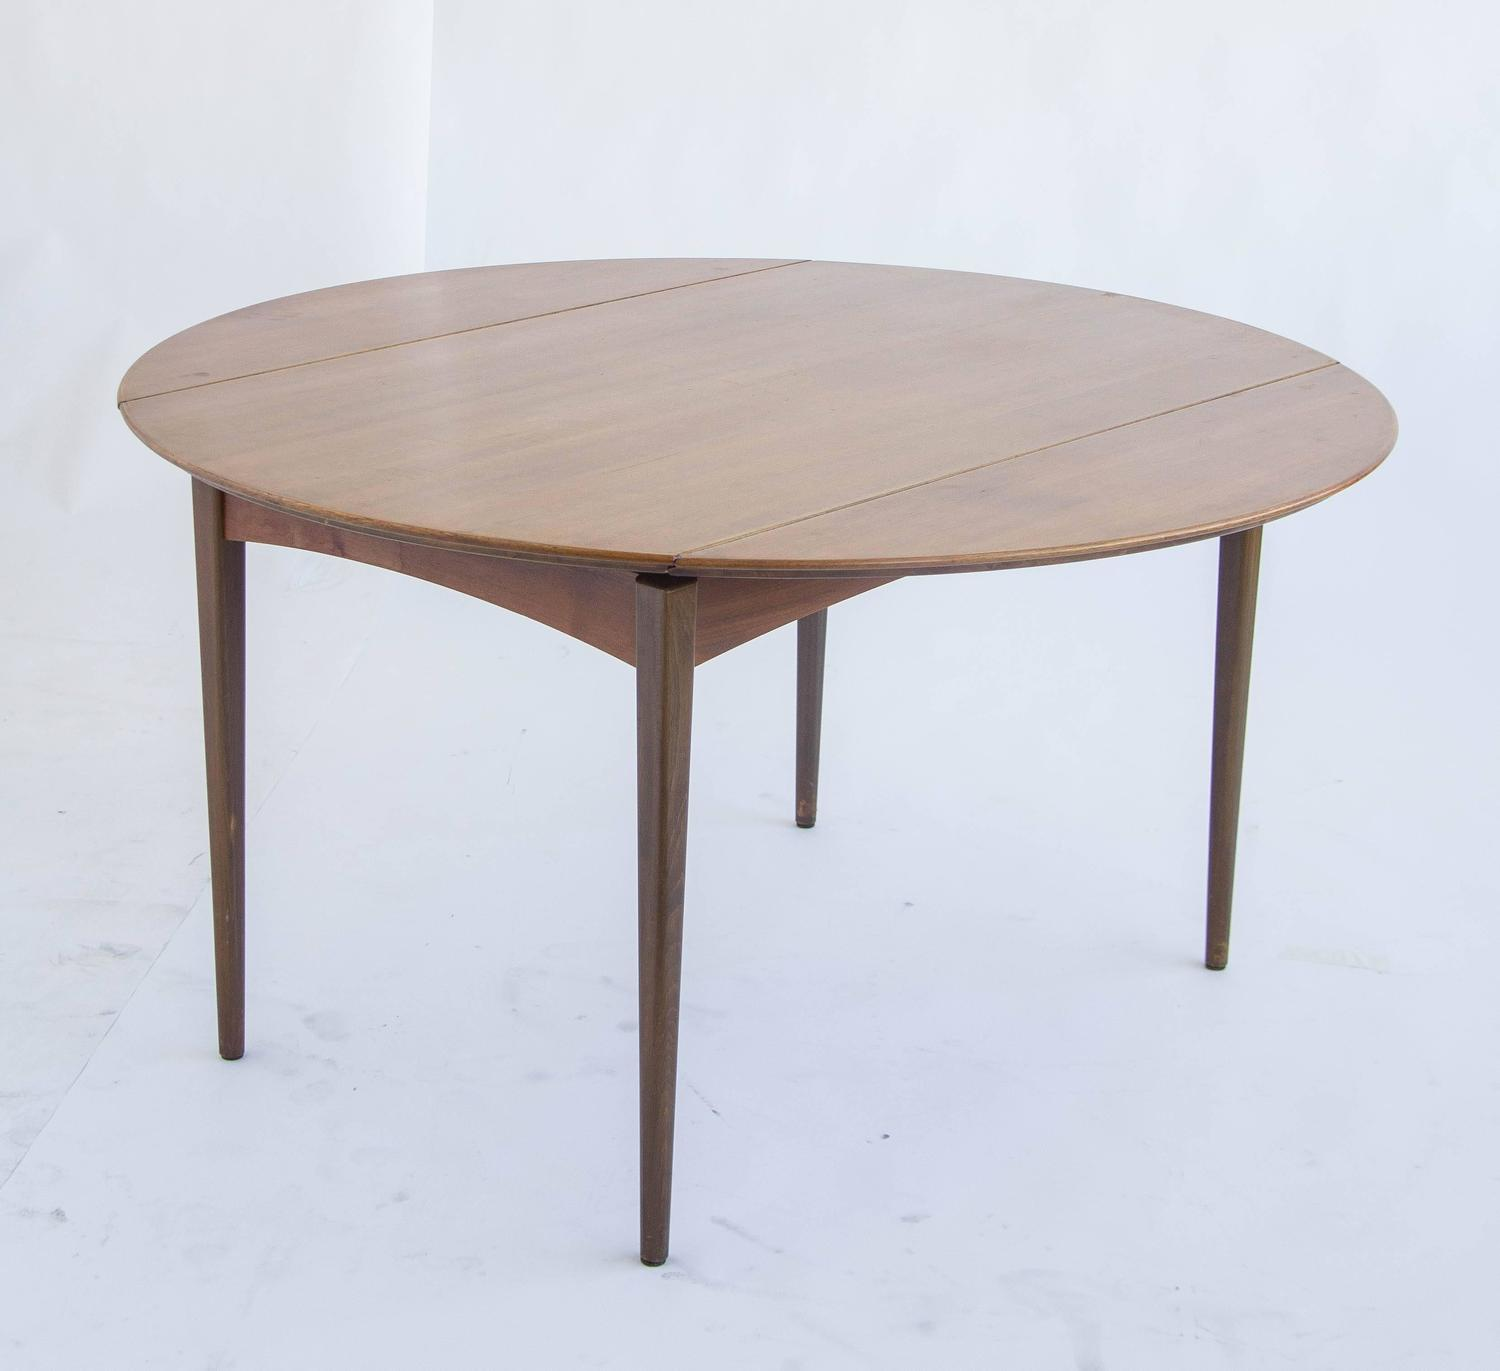 Dux of sweden round drop leaf dining table for sale at 1stdibs for Most beautiful dining room tables